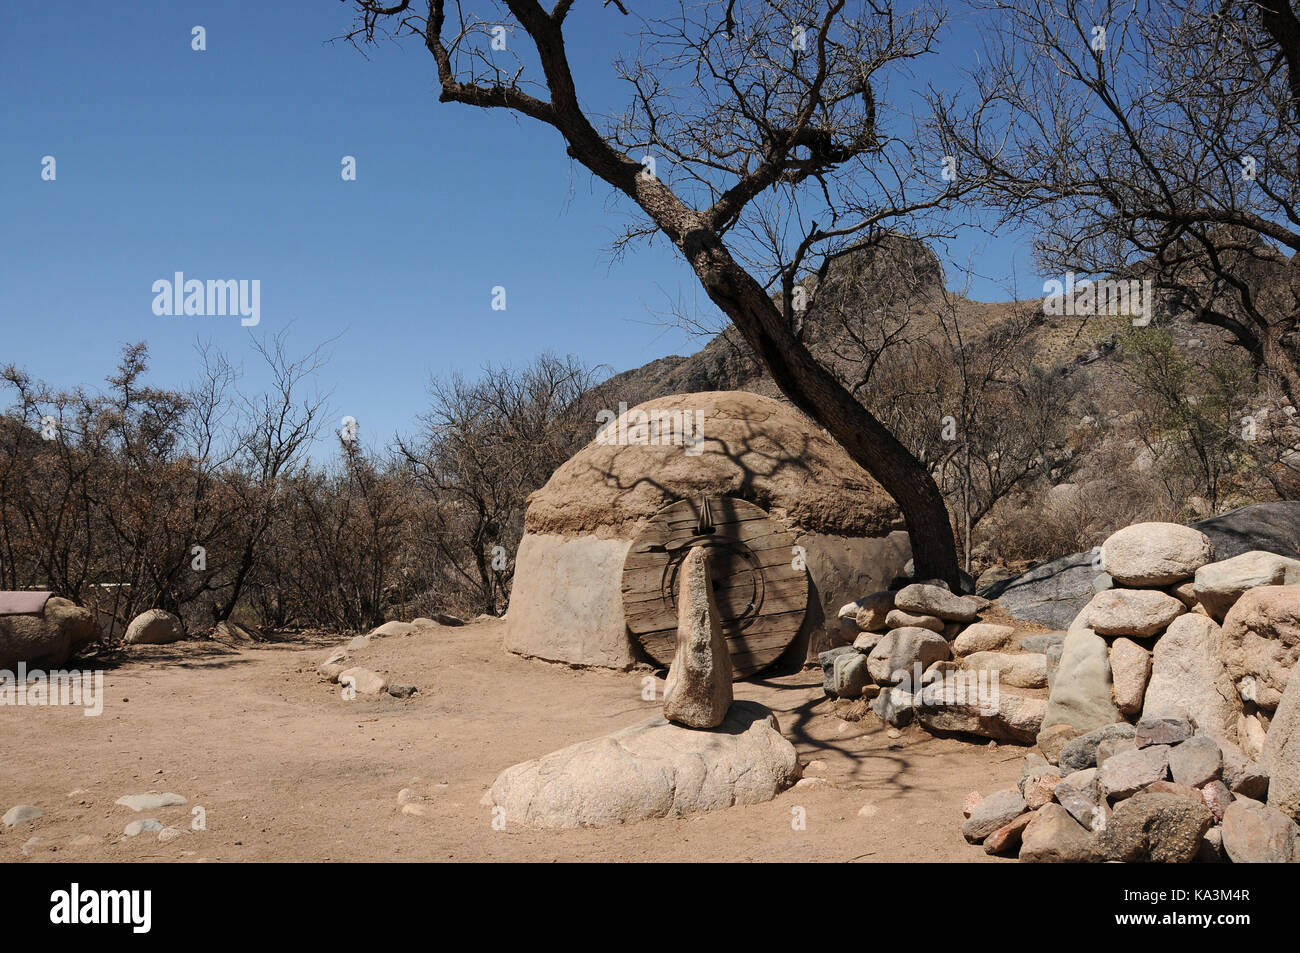 An intertribal sweat lodge site, blessed by a Navajo medicine man Dan Chee, has been used for Native American ceremonies - Stock Image